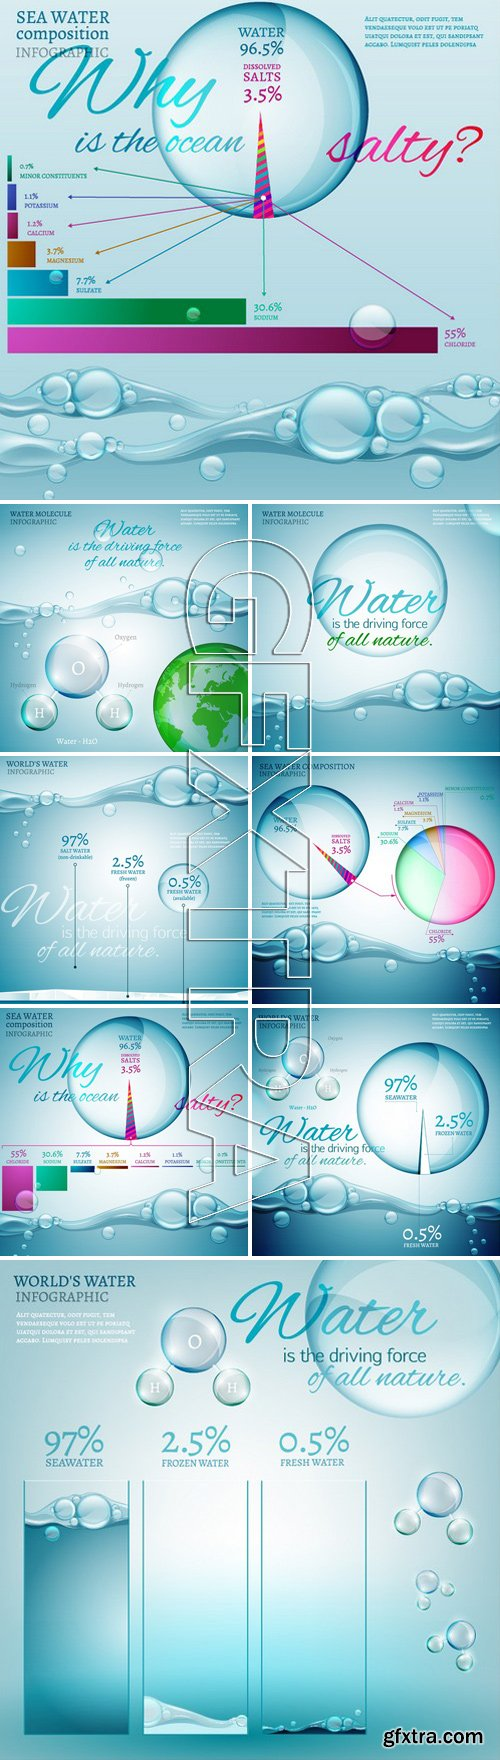 Stock Vectors - Water is the driving force of all nature. The illustration of bio infographics with water molecule in transparent style. Ecology and biochemistry concept. Save World waters!